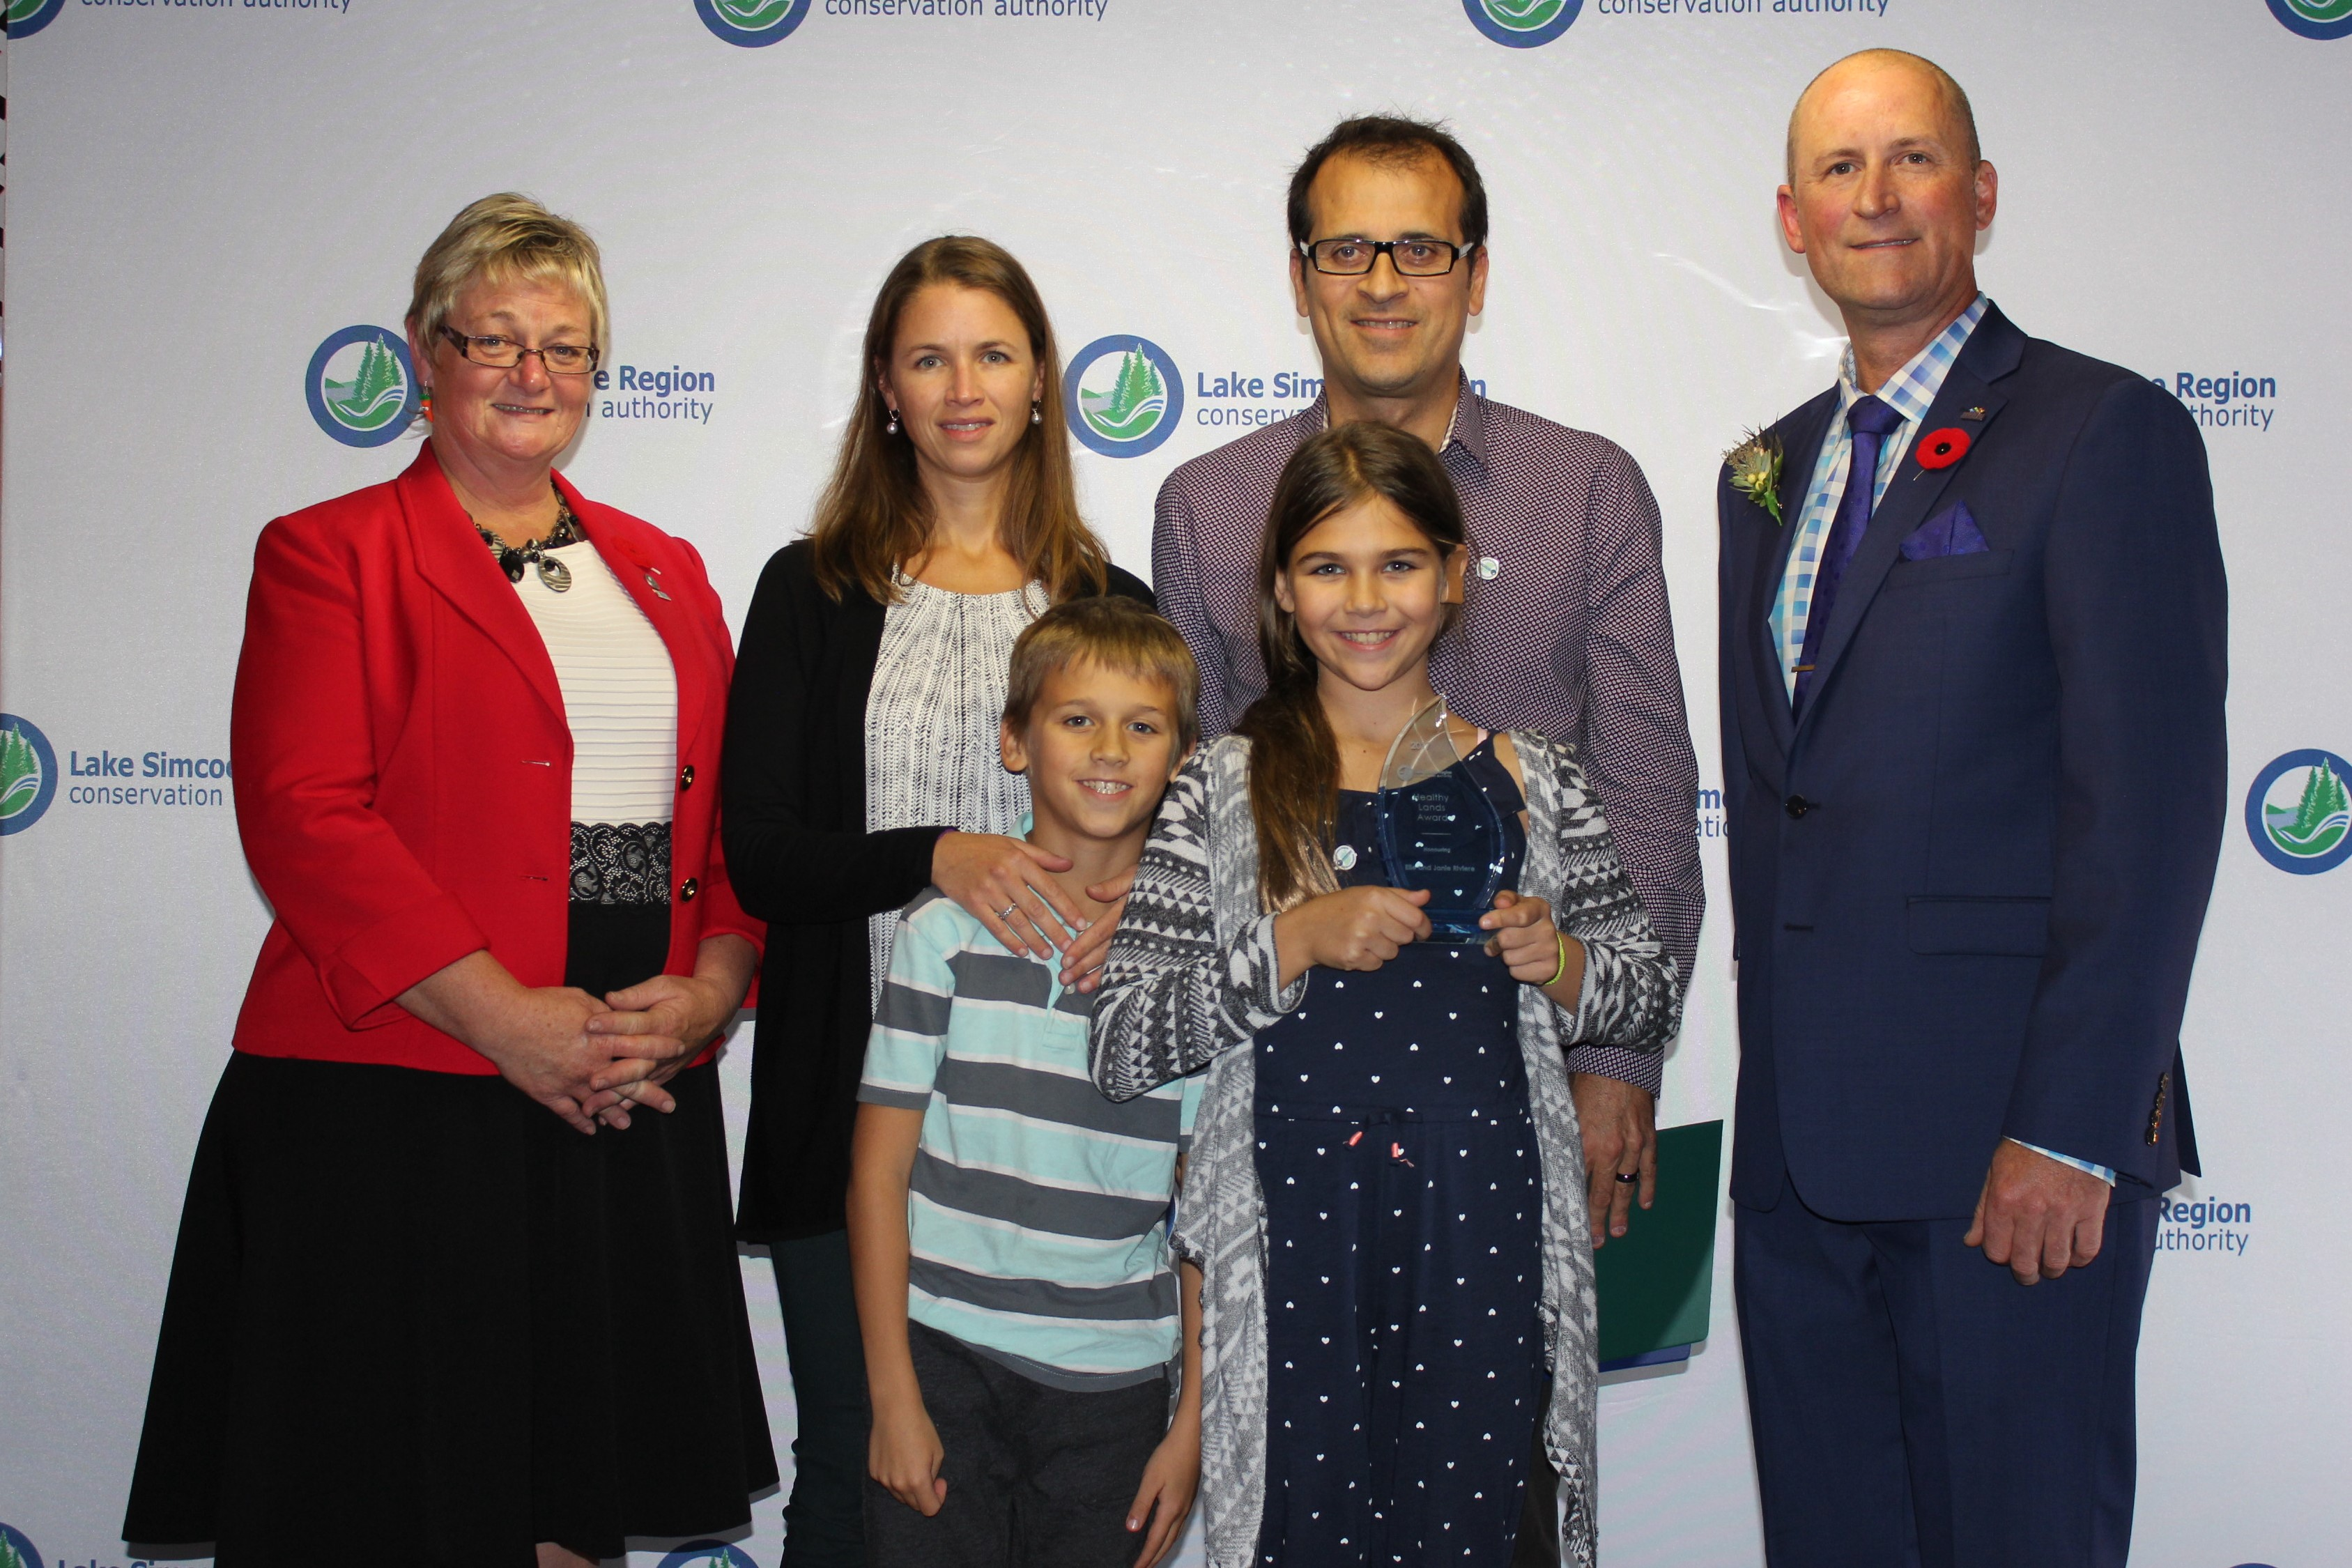 Healthy Lands Award - Riviere Family